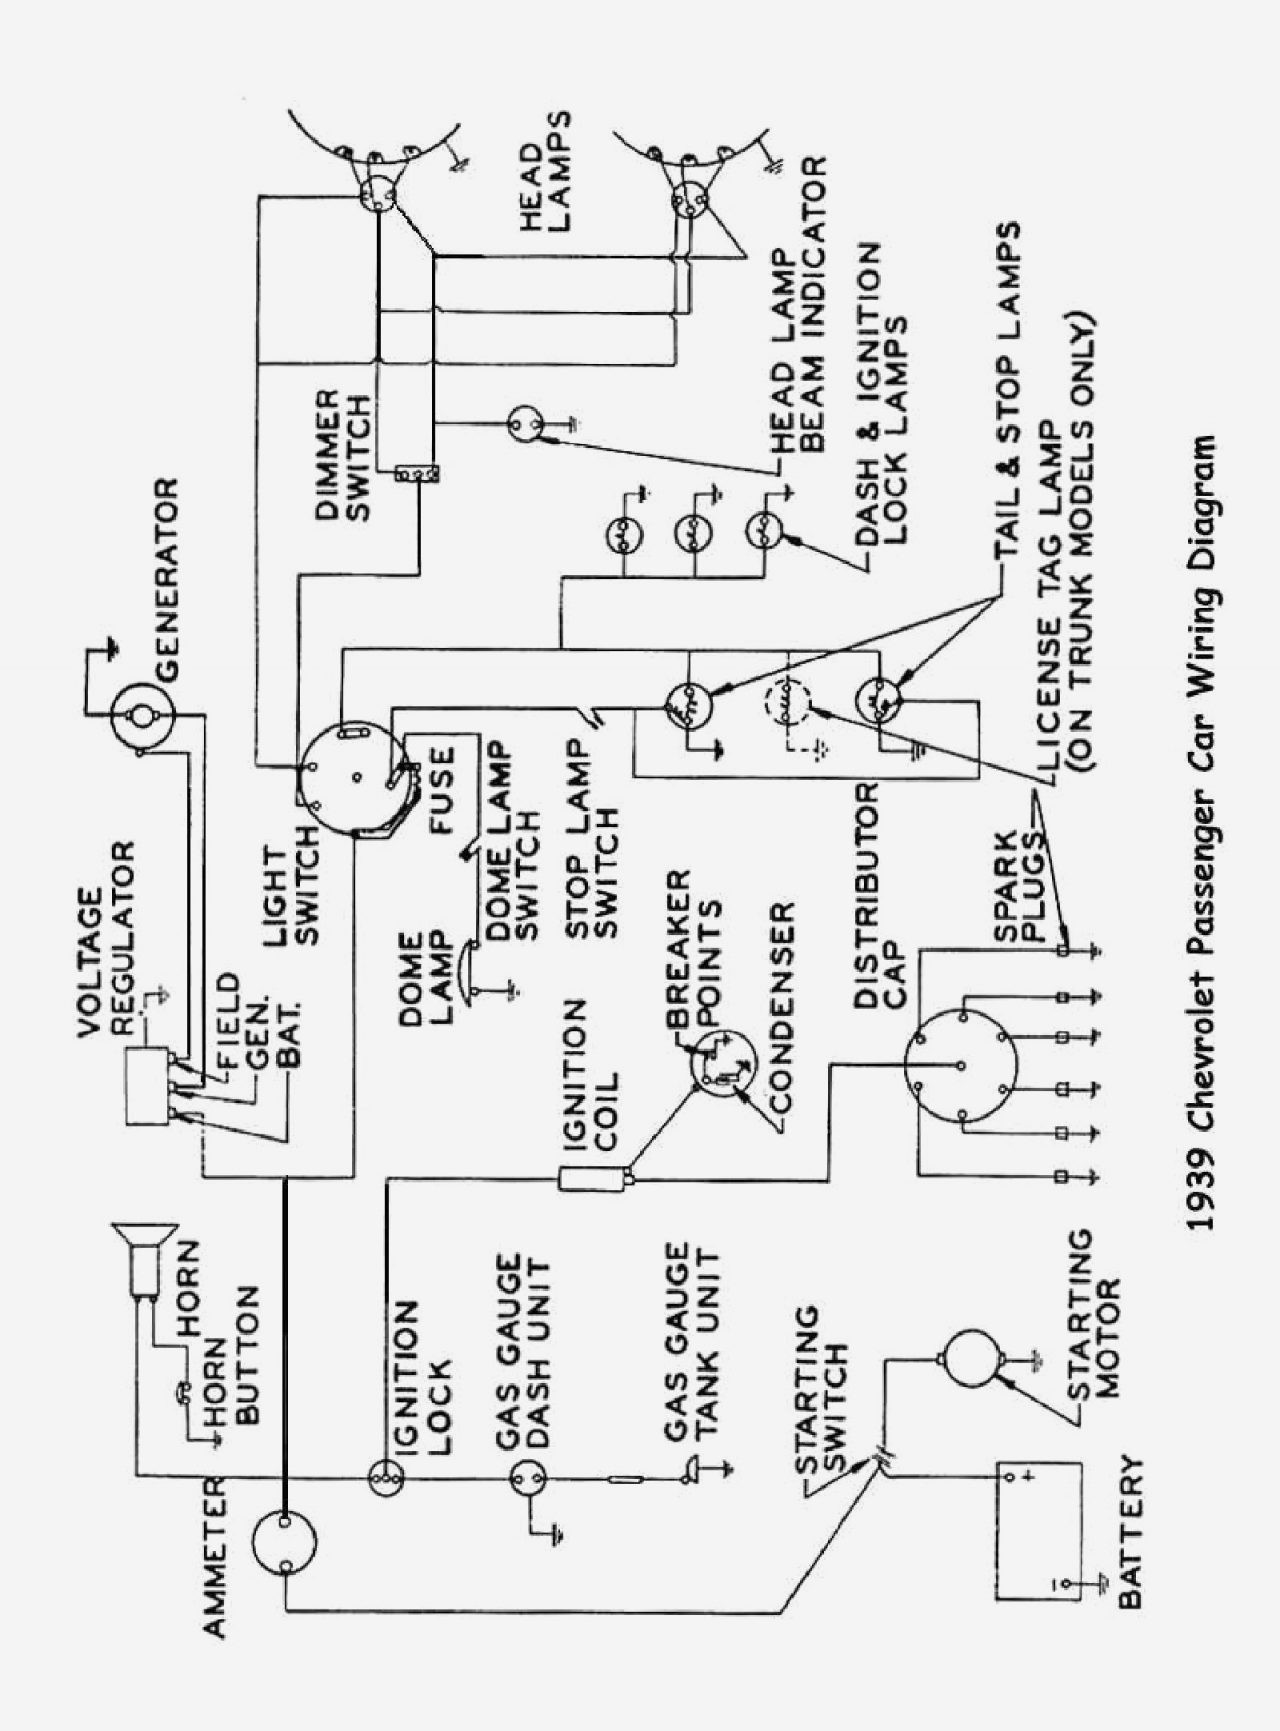 Dometic thermostat Wiring Diagram Awesome Dometic thermostat Wiring Diagram New Coleman Mach thermostat